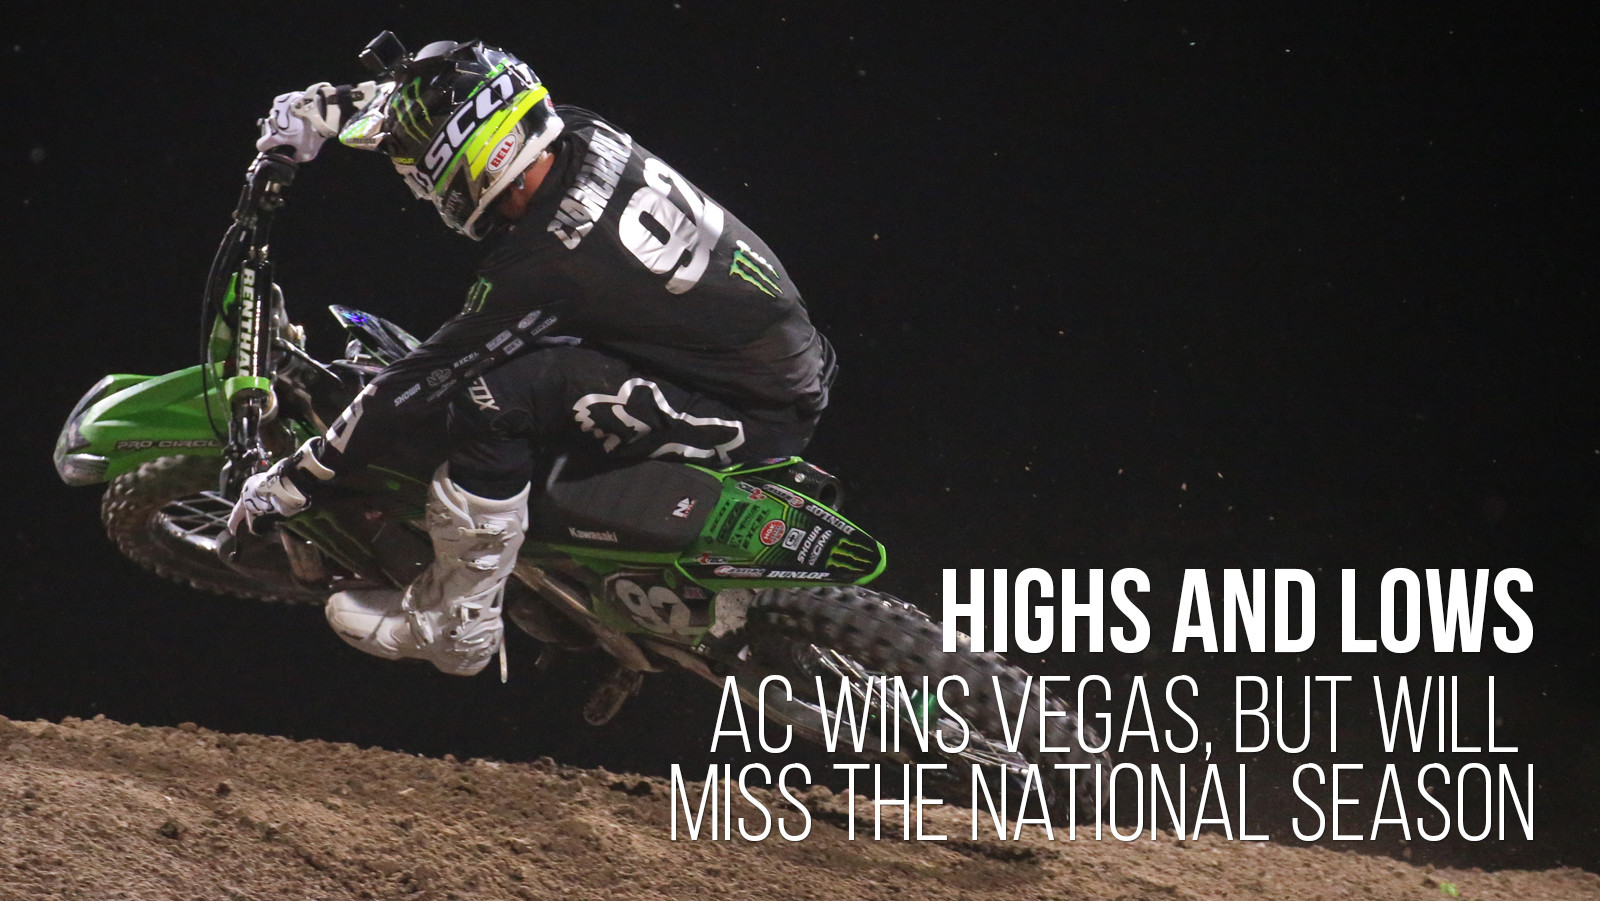 Highs and Lows: Adam Cianciarulo Wins Vegas, Will Miss the National Season